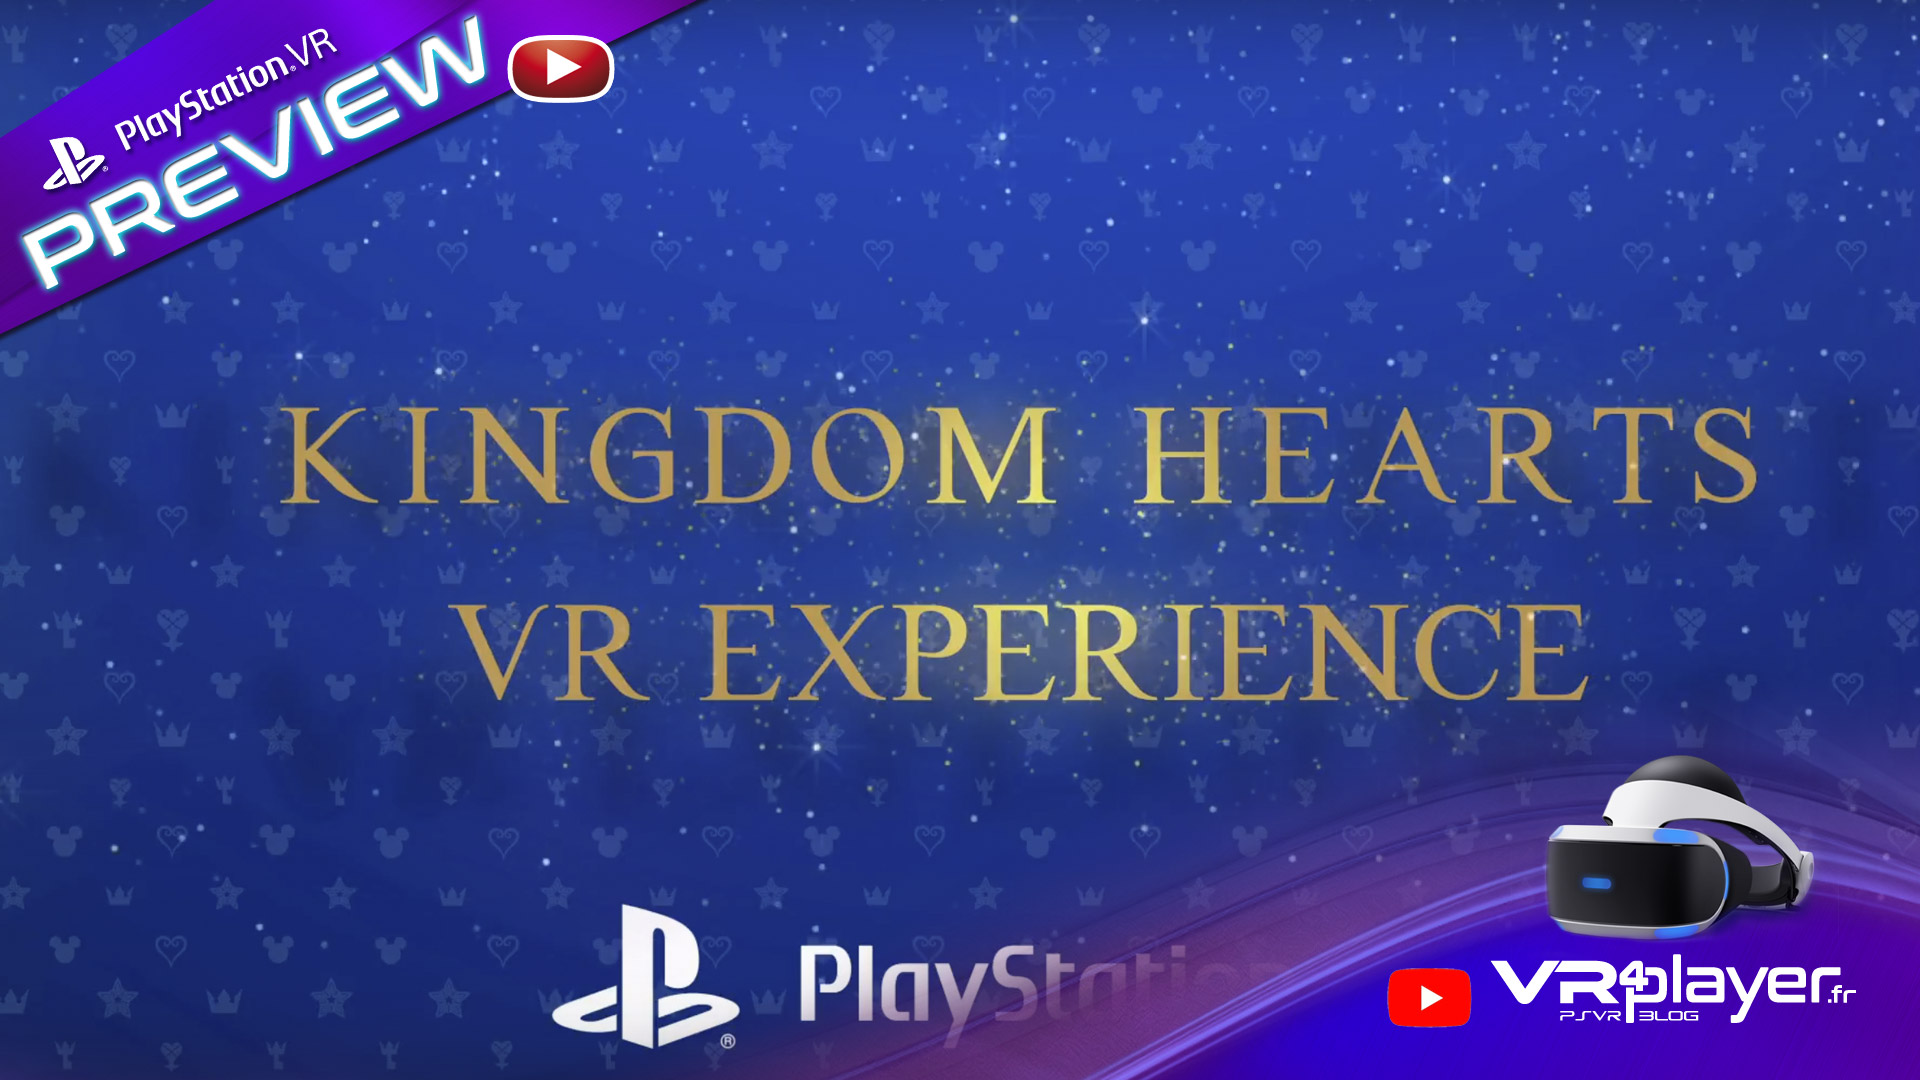 Kingdom Hearts VR Experience en preview - vr4player.fr